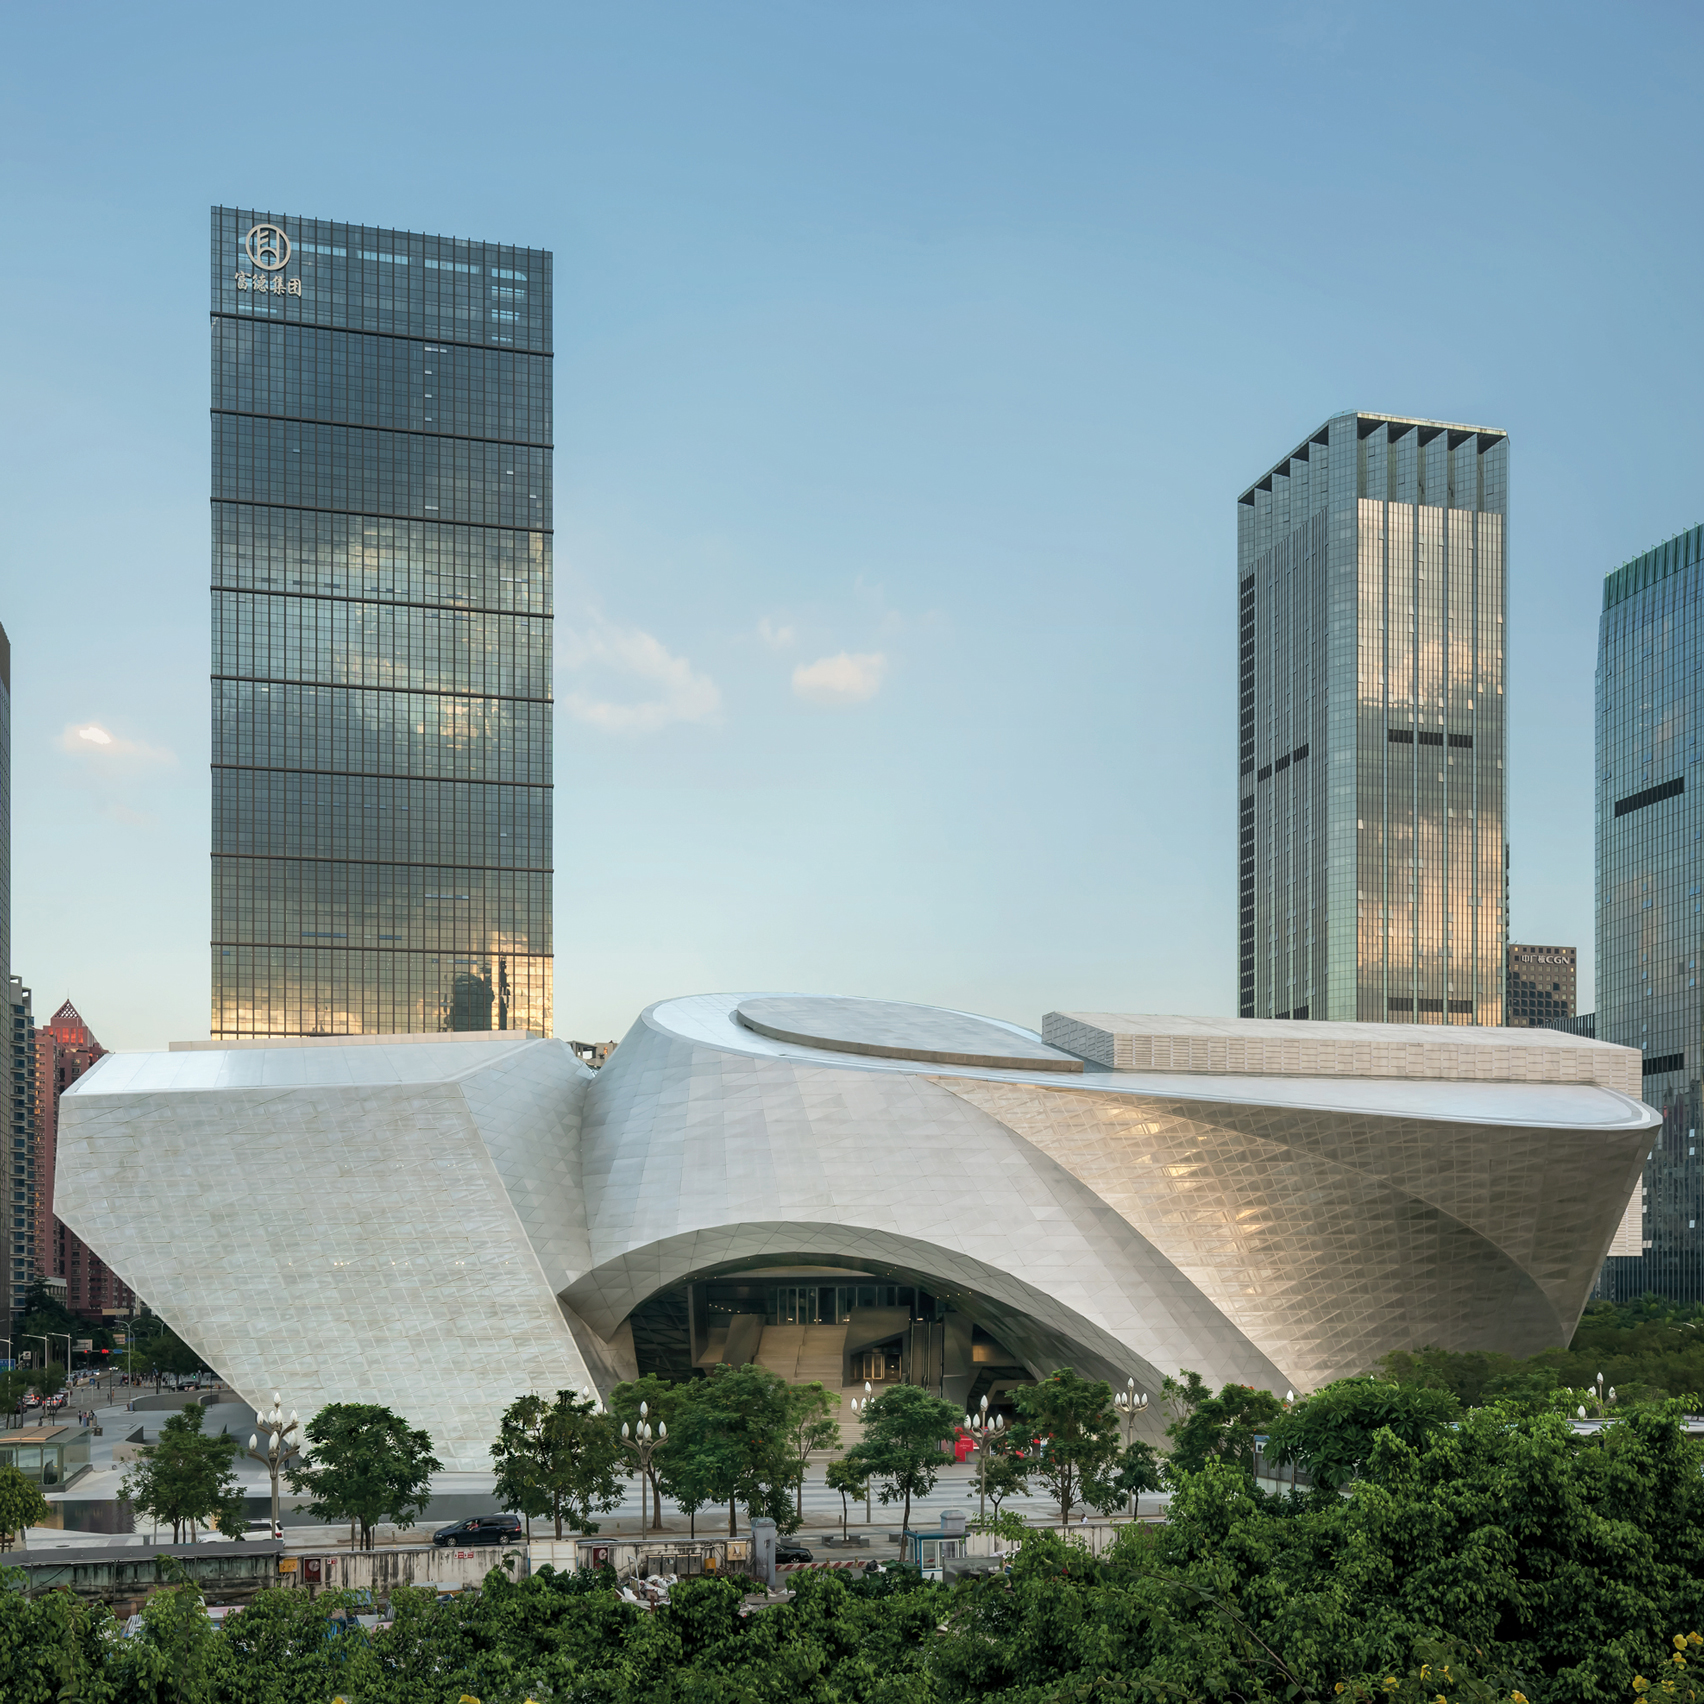 Coop Himmelblau Combines Flat And Curving Forms At Huge Shenzhen Art Complex